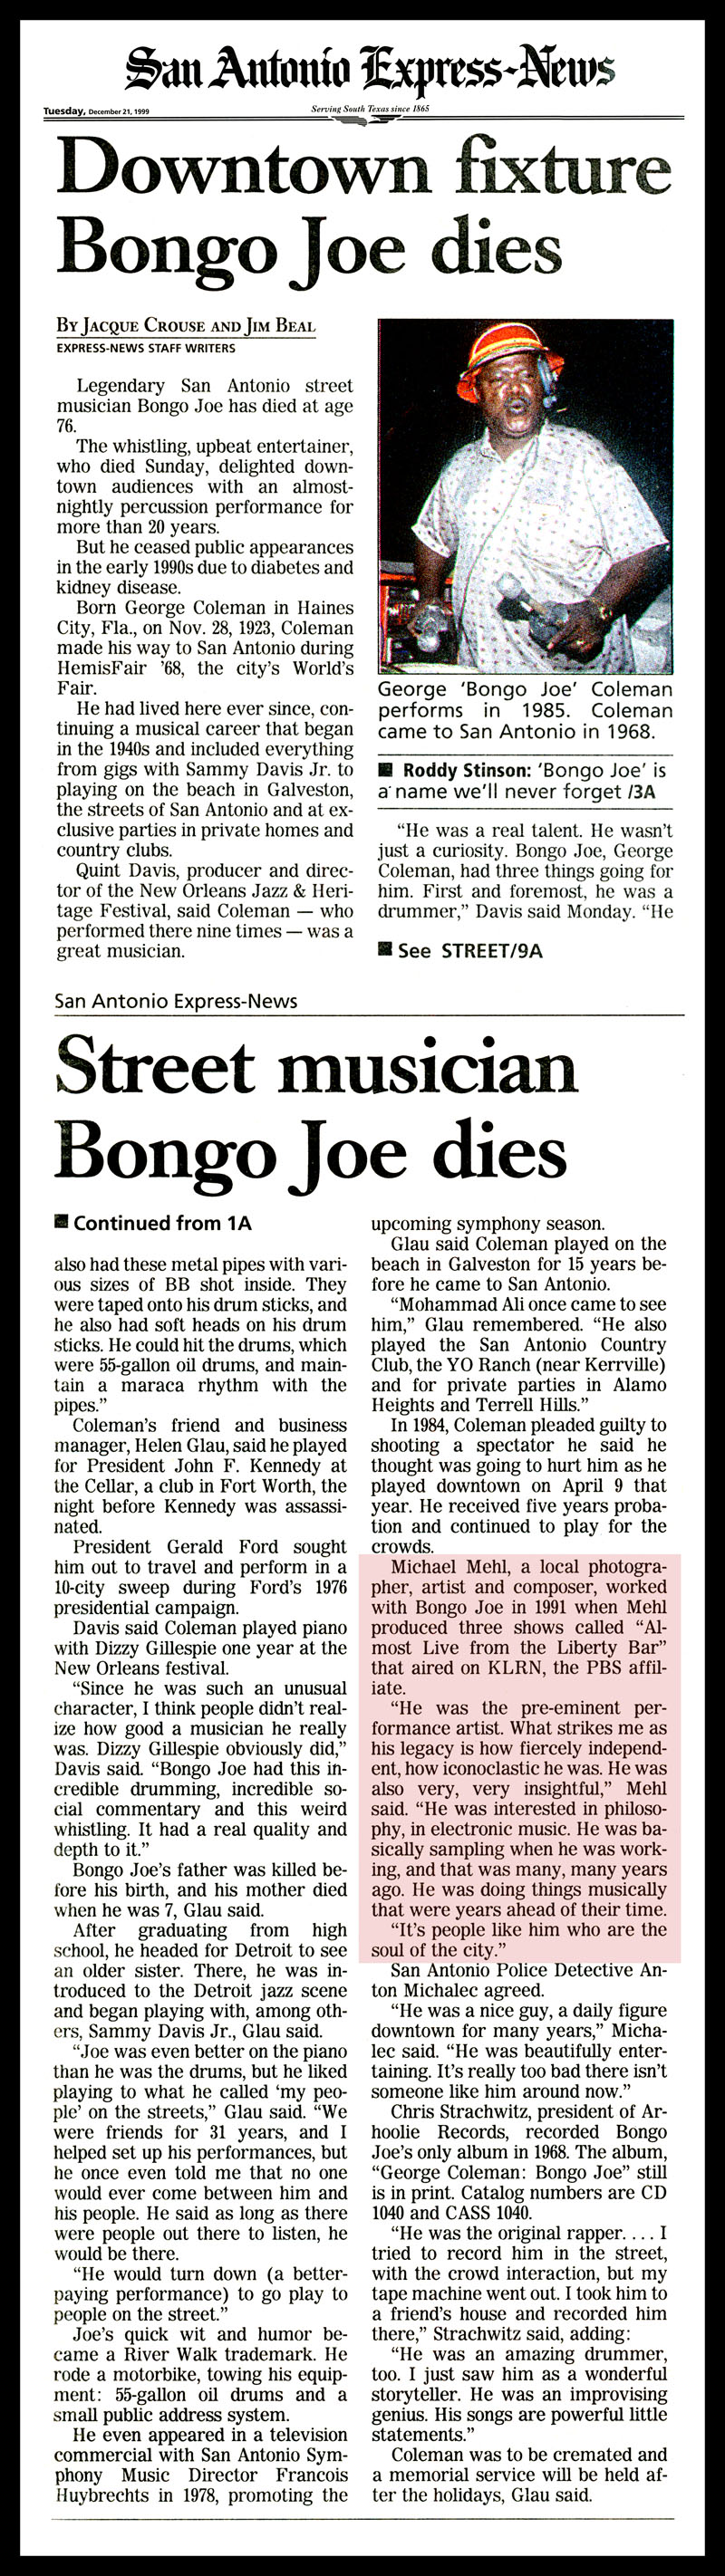 1999_Michael-Mehl_Bongo-Joe-Dies_San-Antonio-Express-News